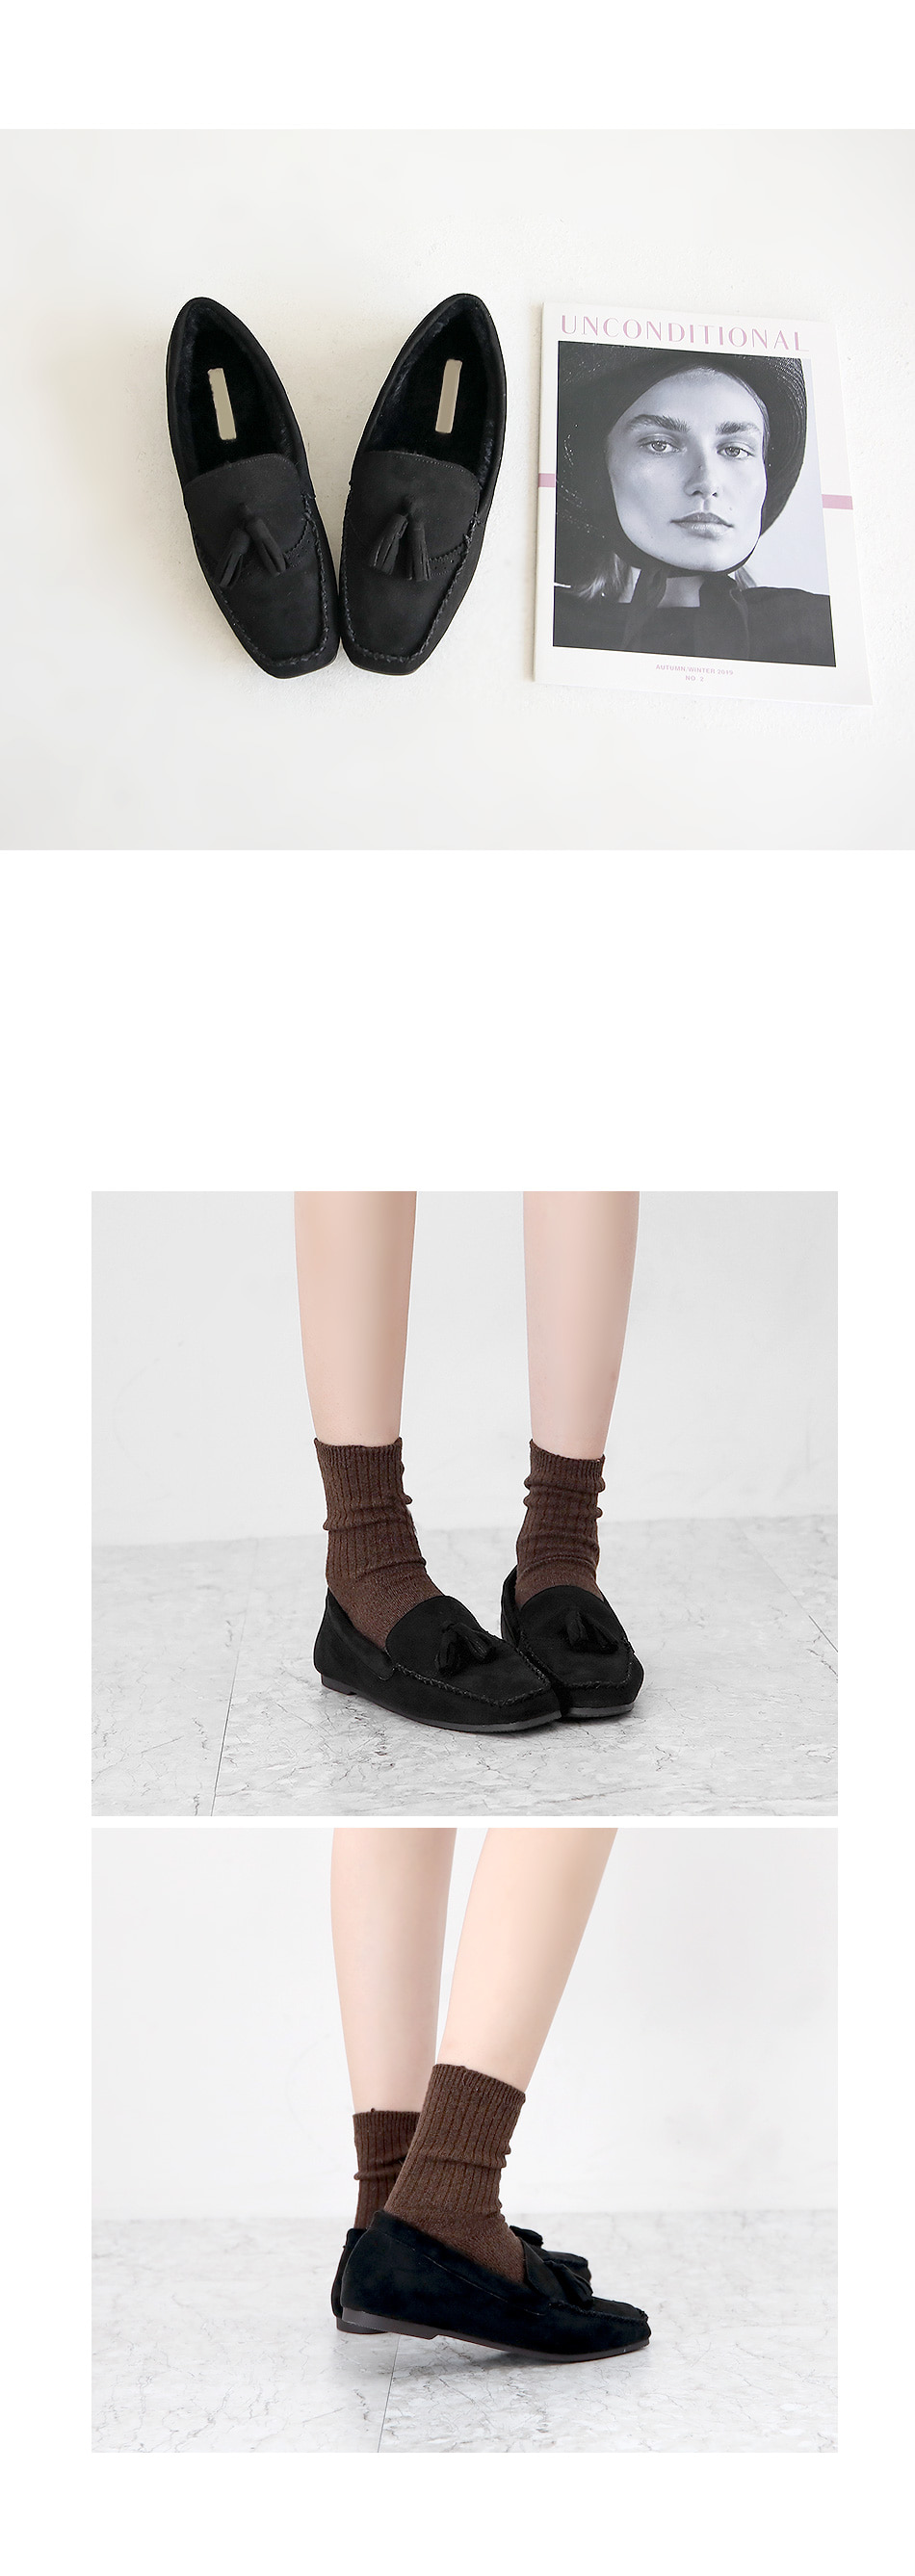 Hokent Height Loafers 2cm